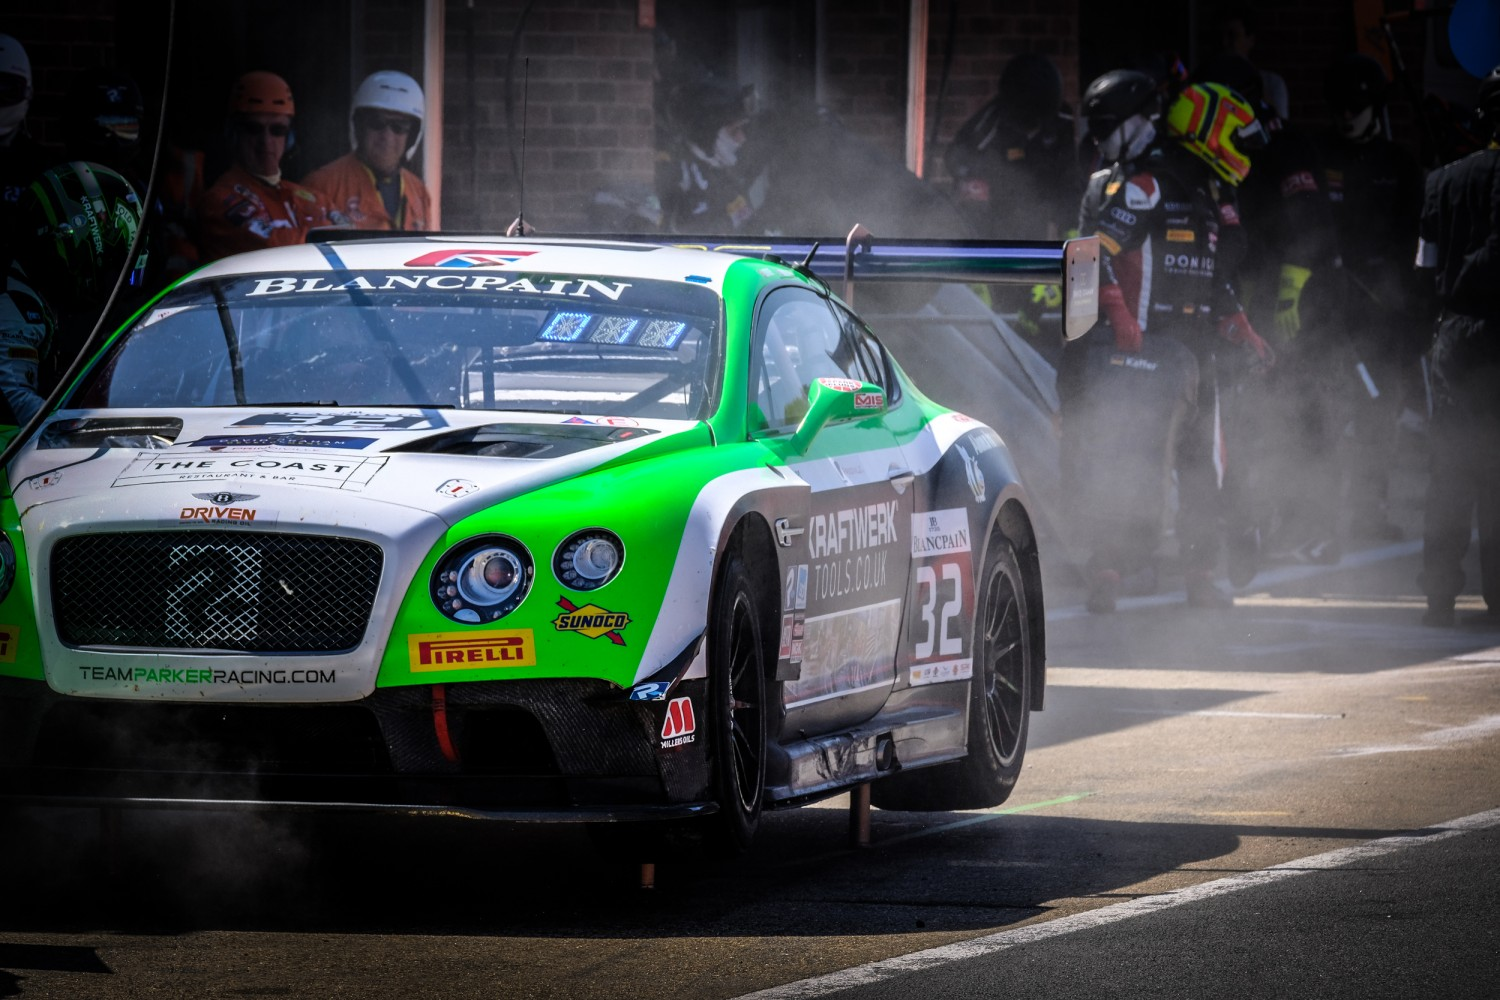 #32 Team Parker Racing GBR Bentley Continental GT3 Pro-Am Cup Ian Loggie GBR Callum Macleod GBR, Race 1  | SRO / Dirk Bogaerts Photography